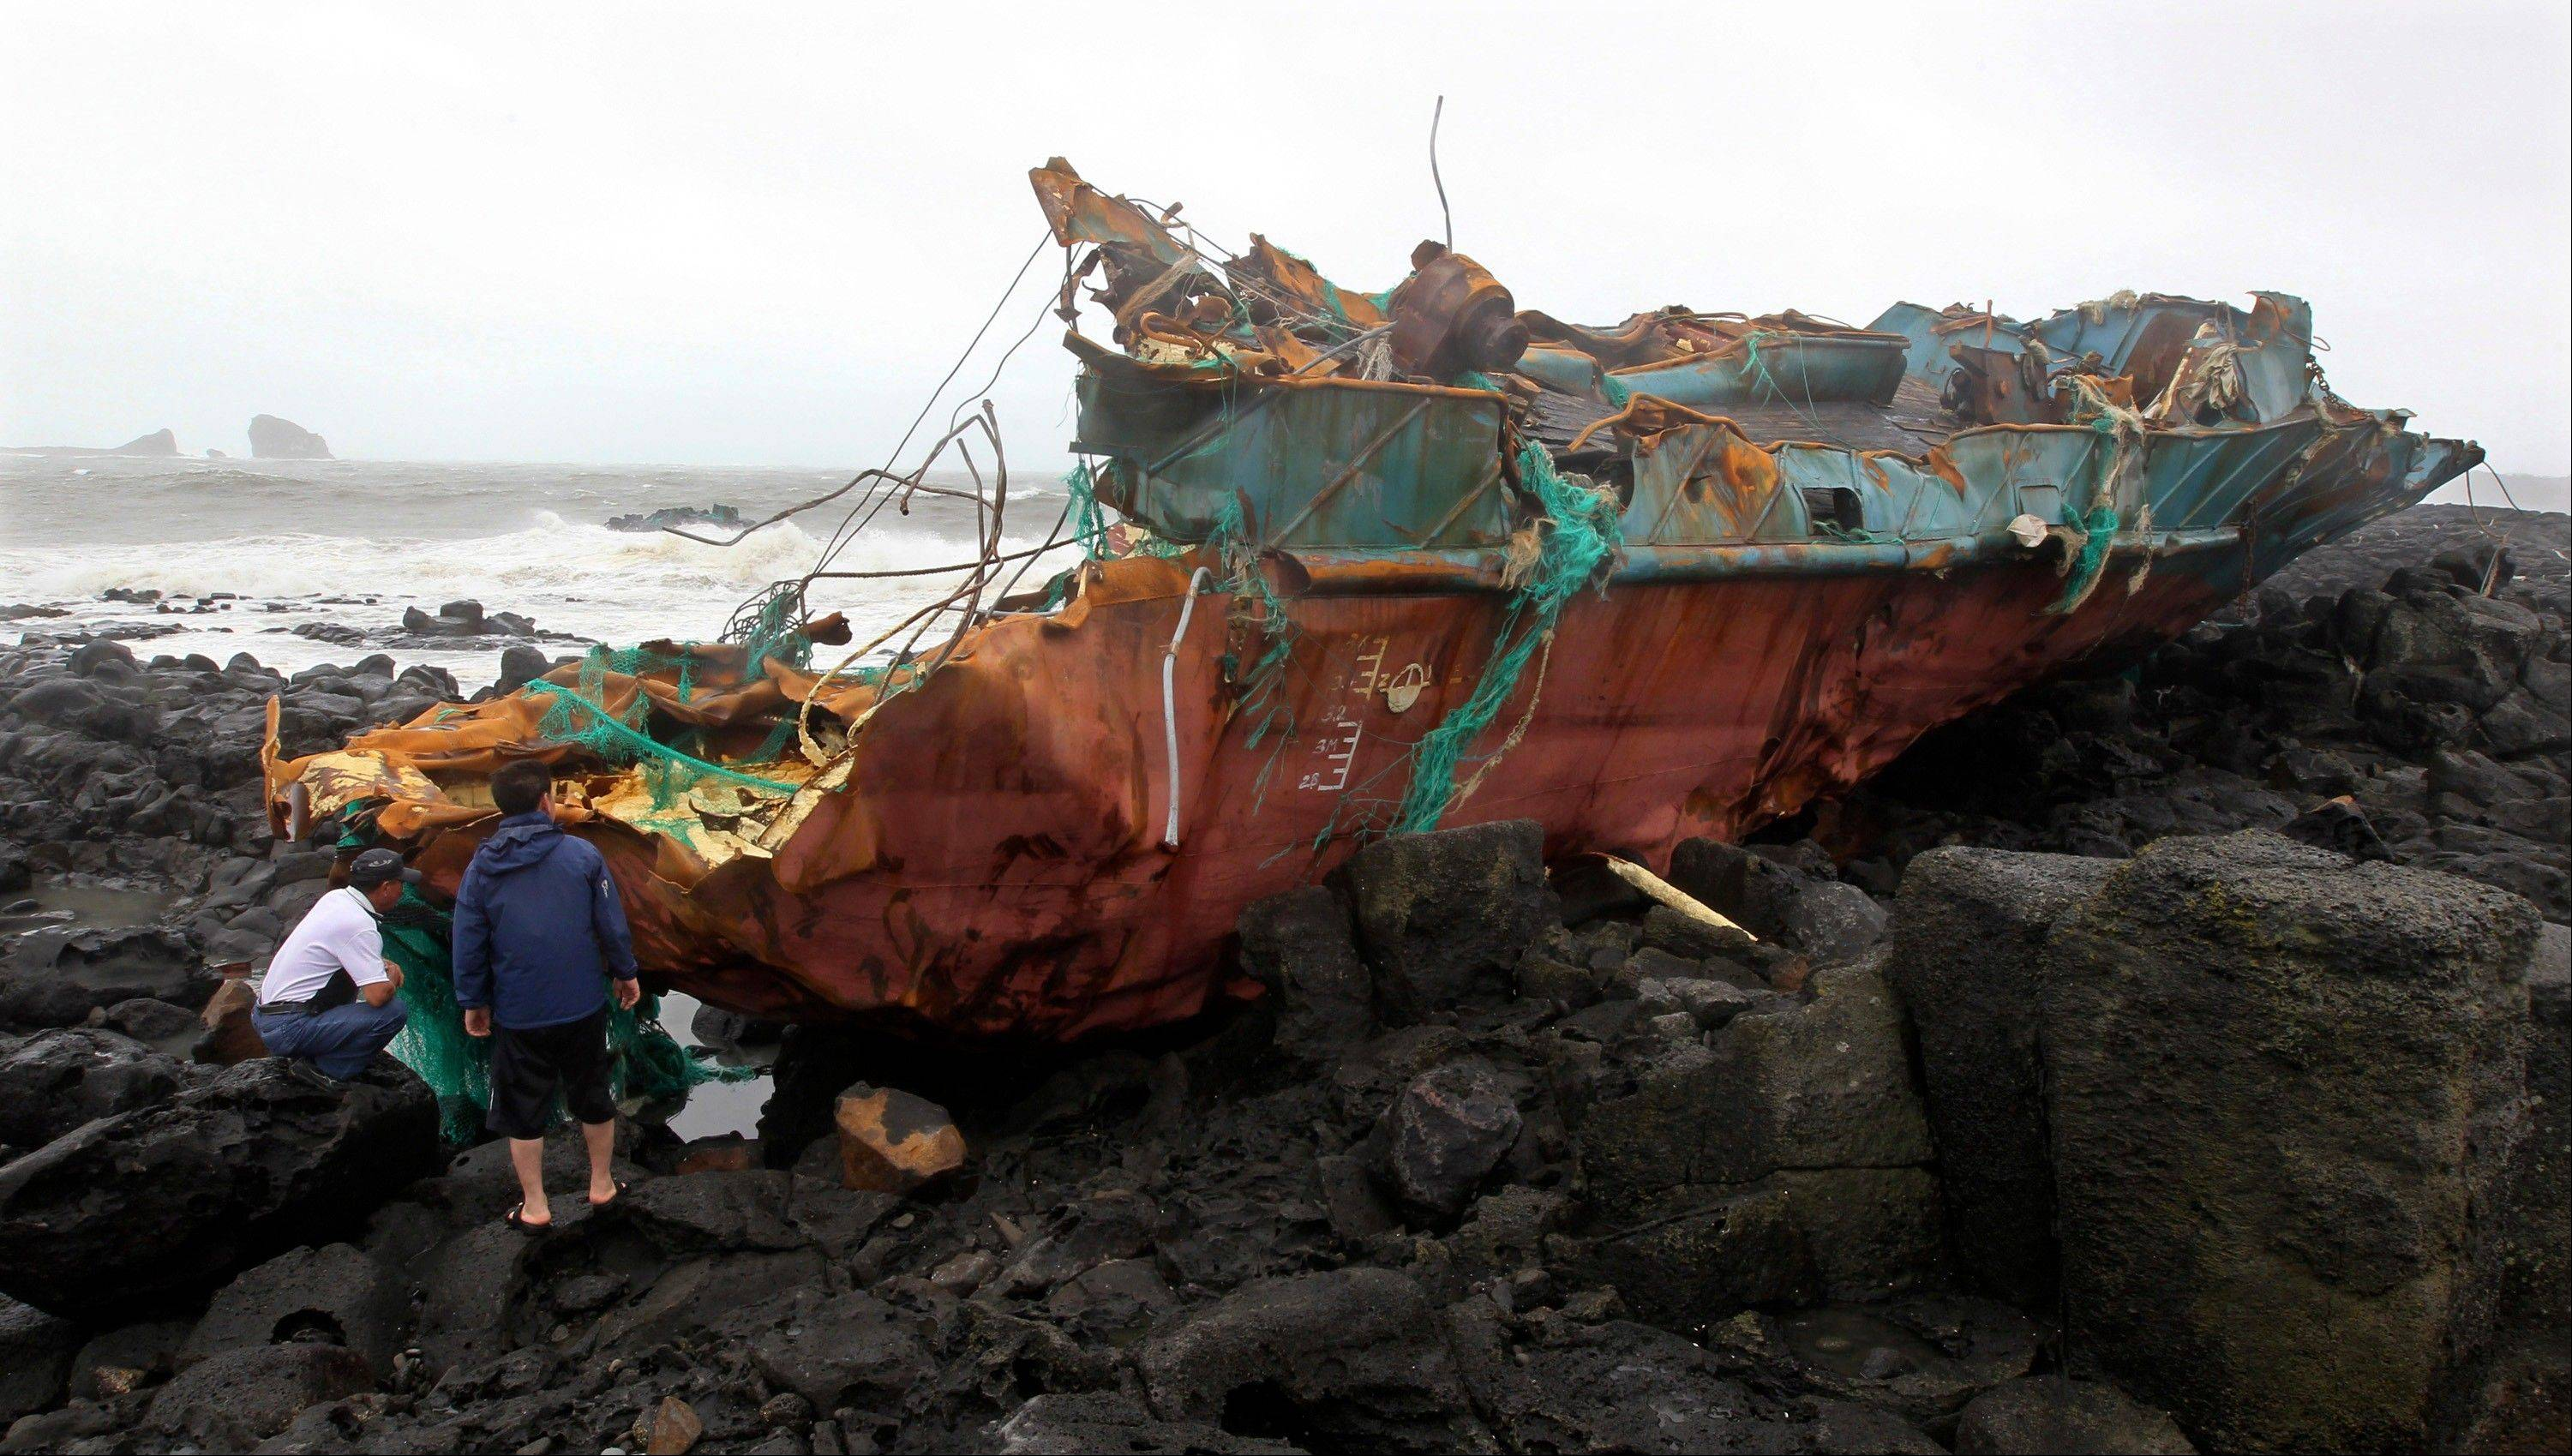 Wreckage of a Chinese ship sits on the shore after it slammed into rocks off the southern coast in Jeju, South Korea, Tuesday, Aug. 28, 2012. A powerful typhoon pounded South Korea with strong winds and heavy rain Tuesday, while the nation's coast guard battled rough seas in a race to rescue fishermen on two Chinese ships that slammed into rocks off the southern coast.